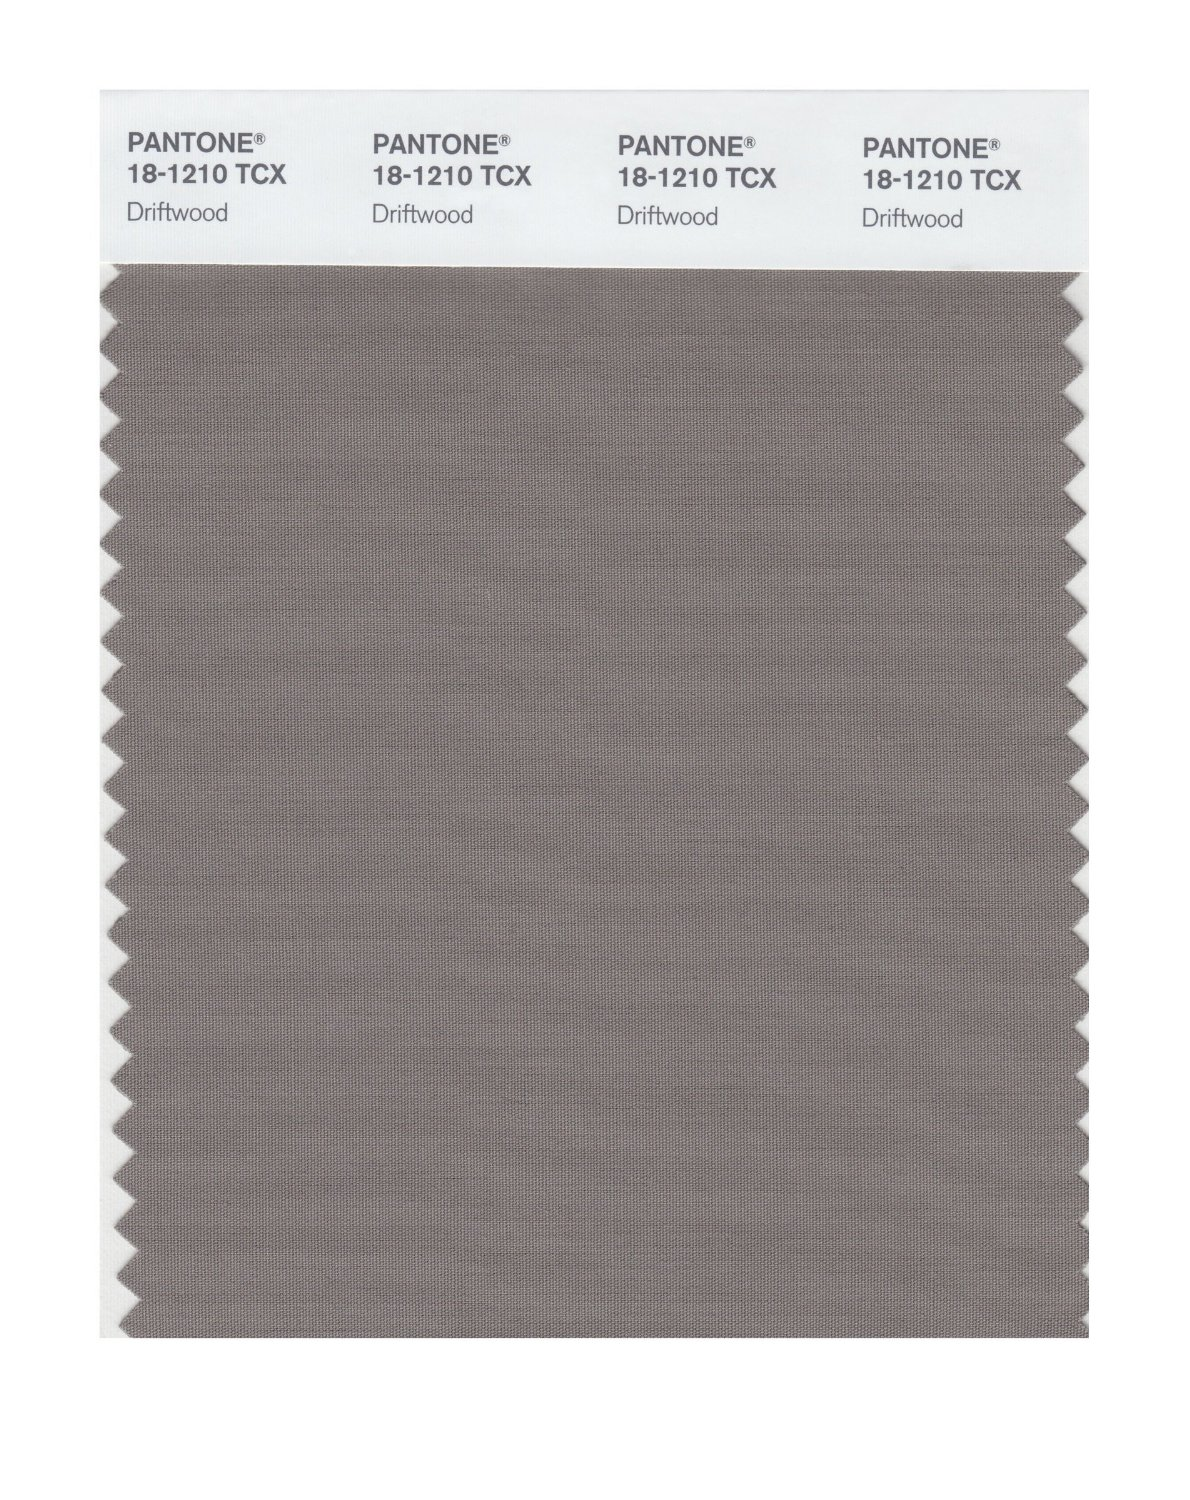 Pantone Smart Swatch 18-1210 Driftwood